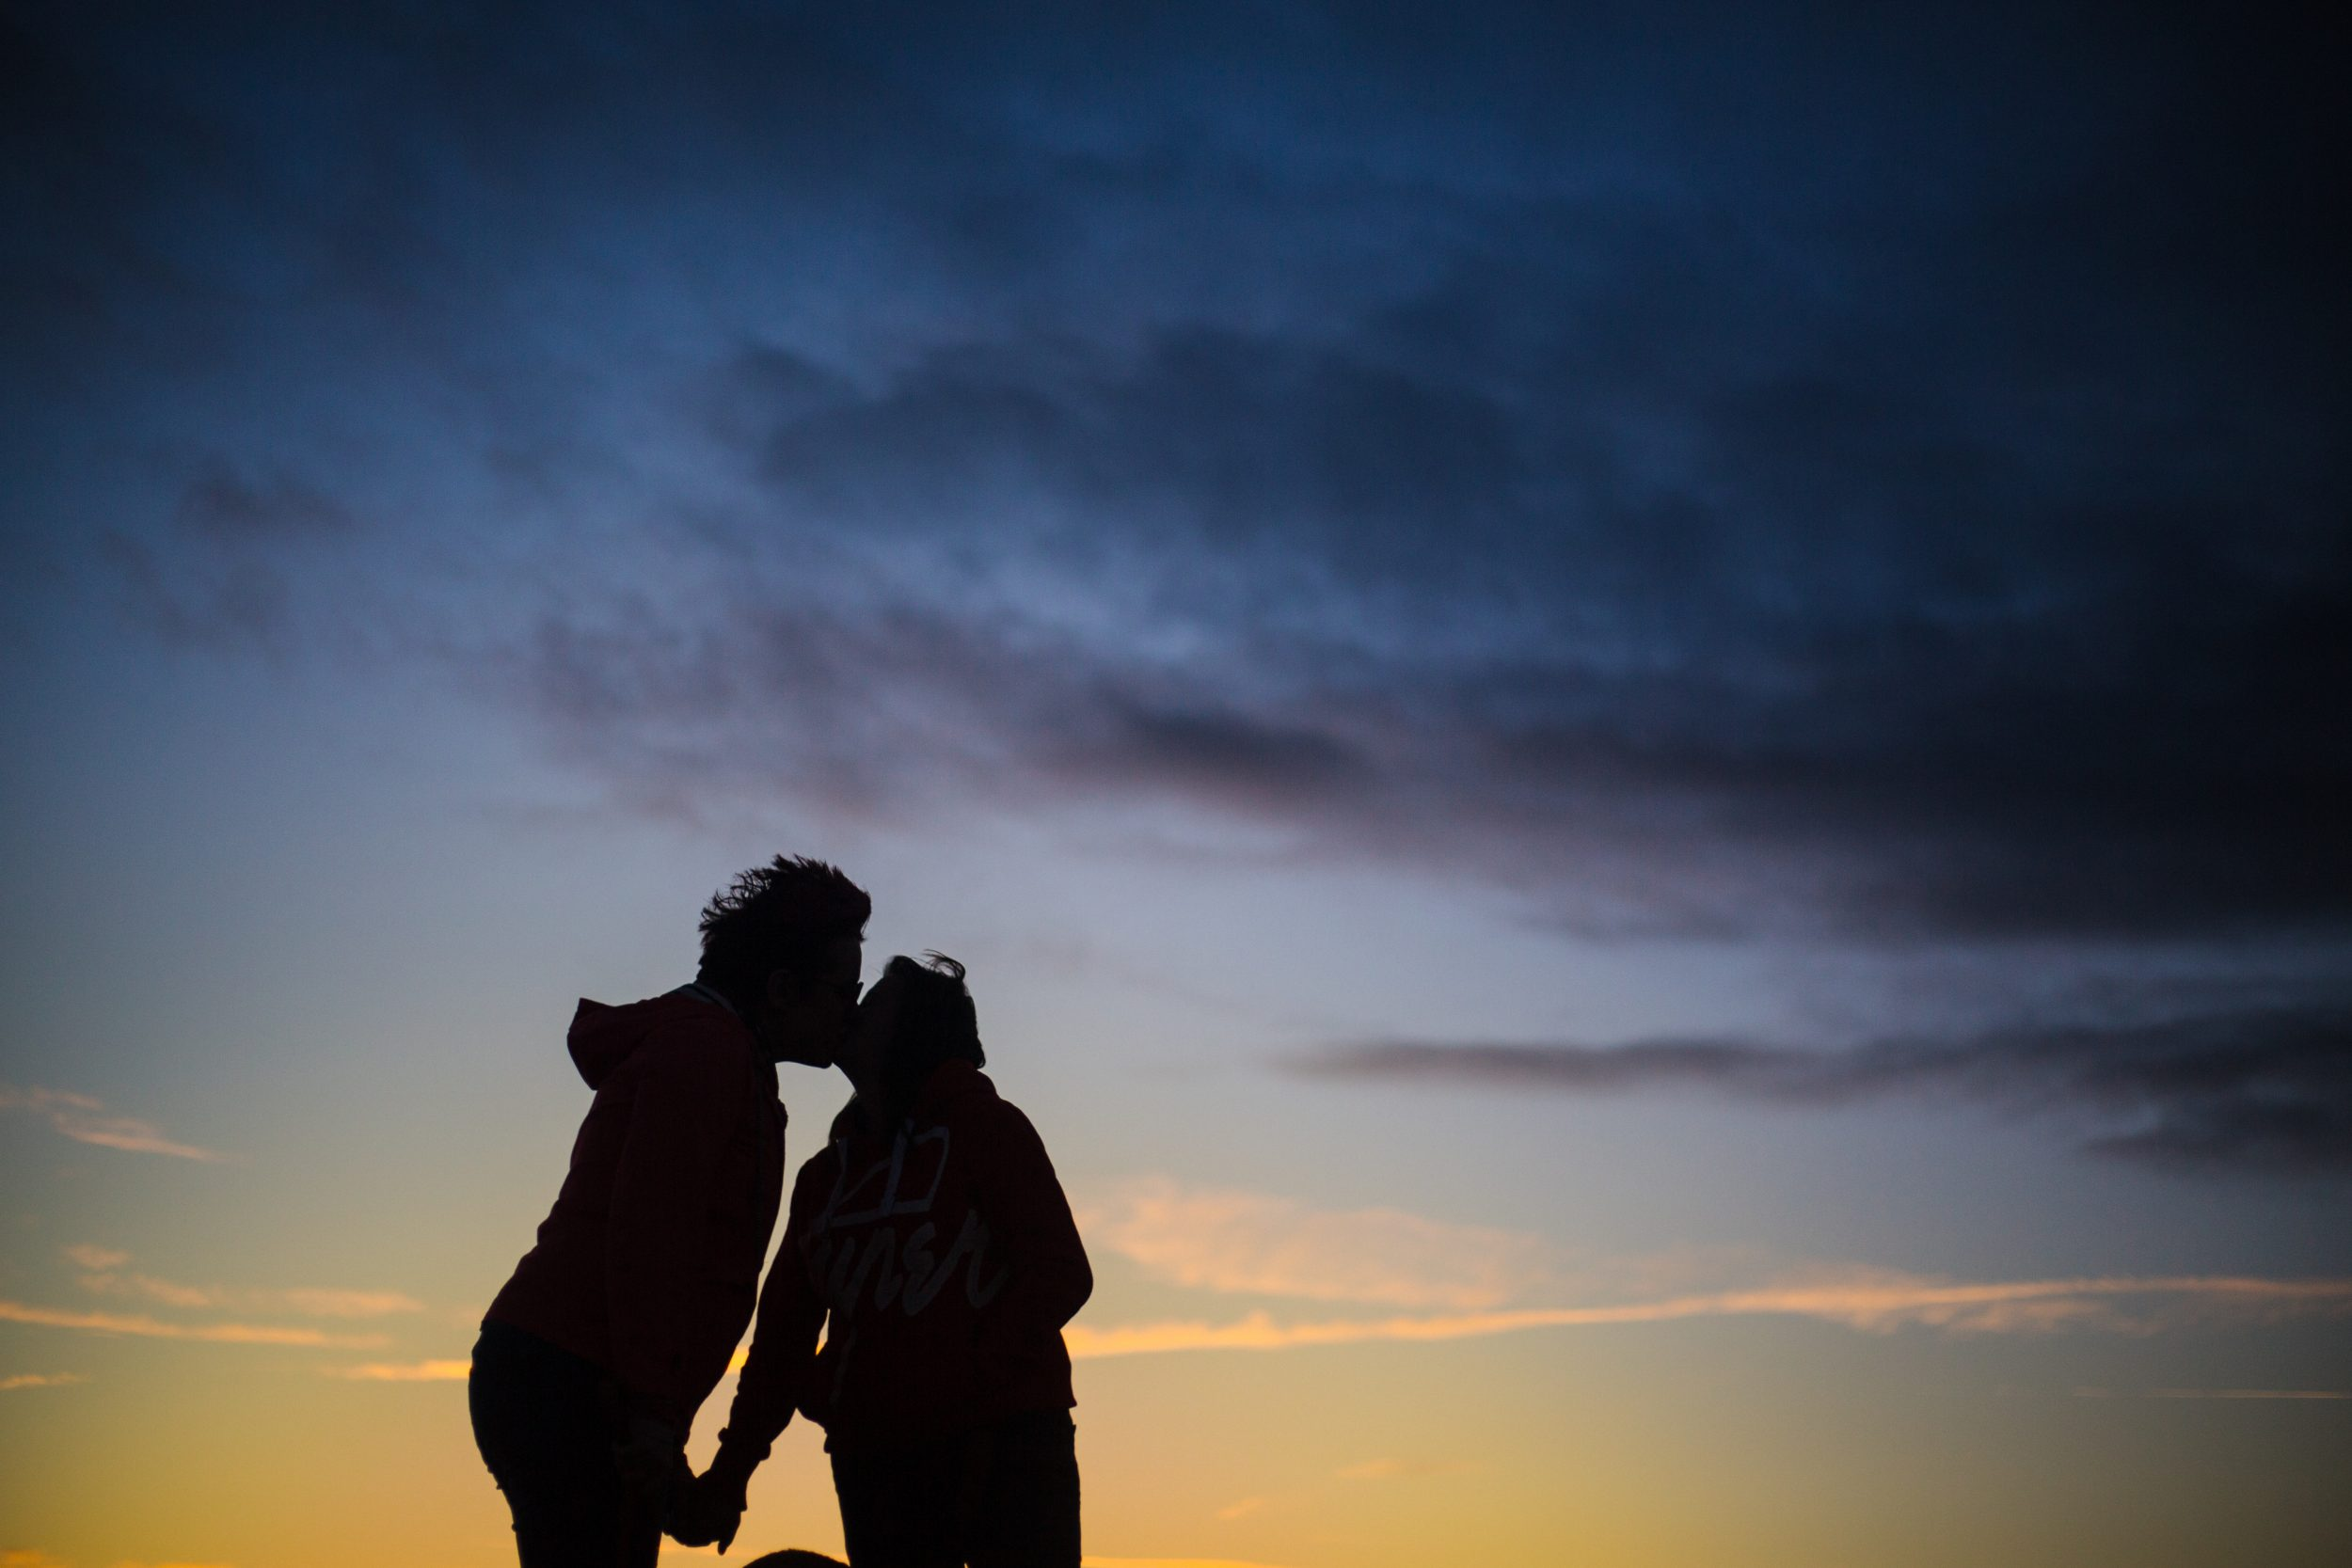 Photograph of Carrie and Amanda sharing a kiss in the sunset